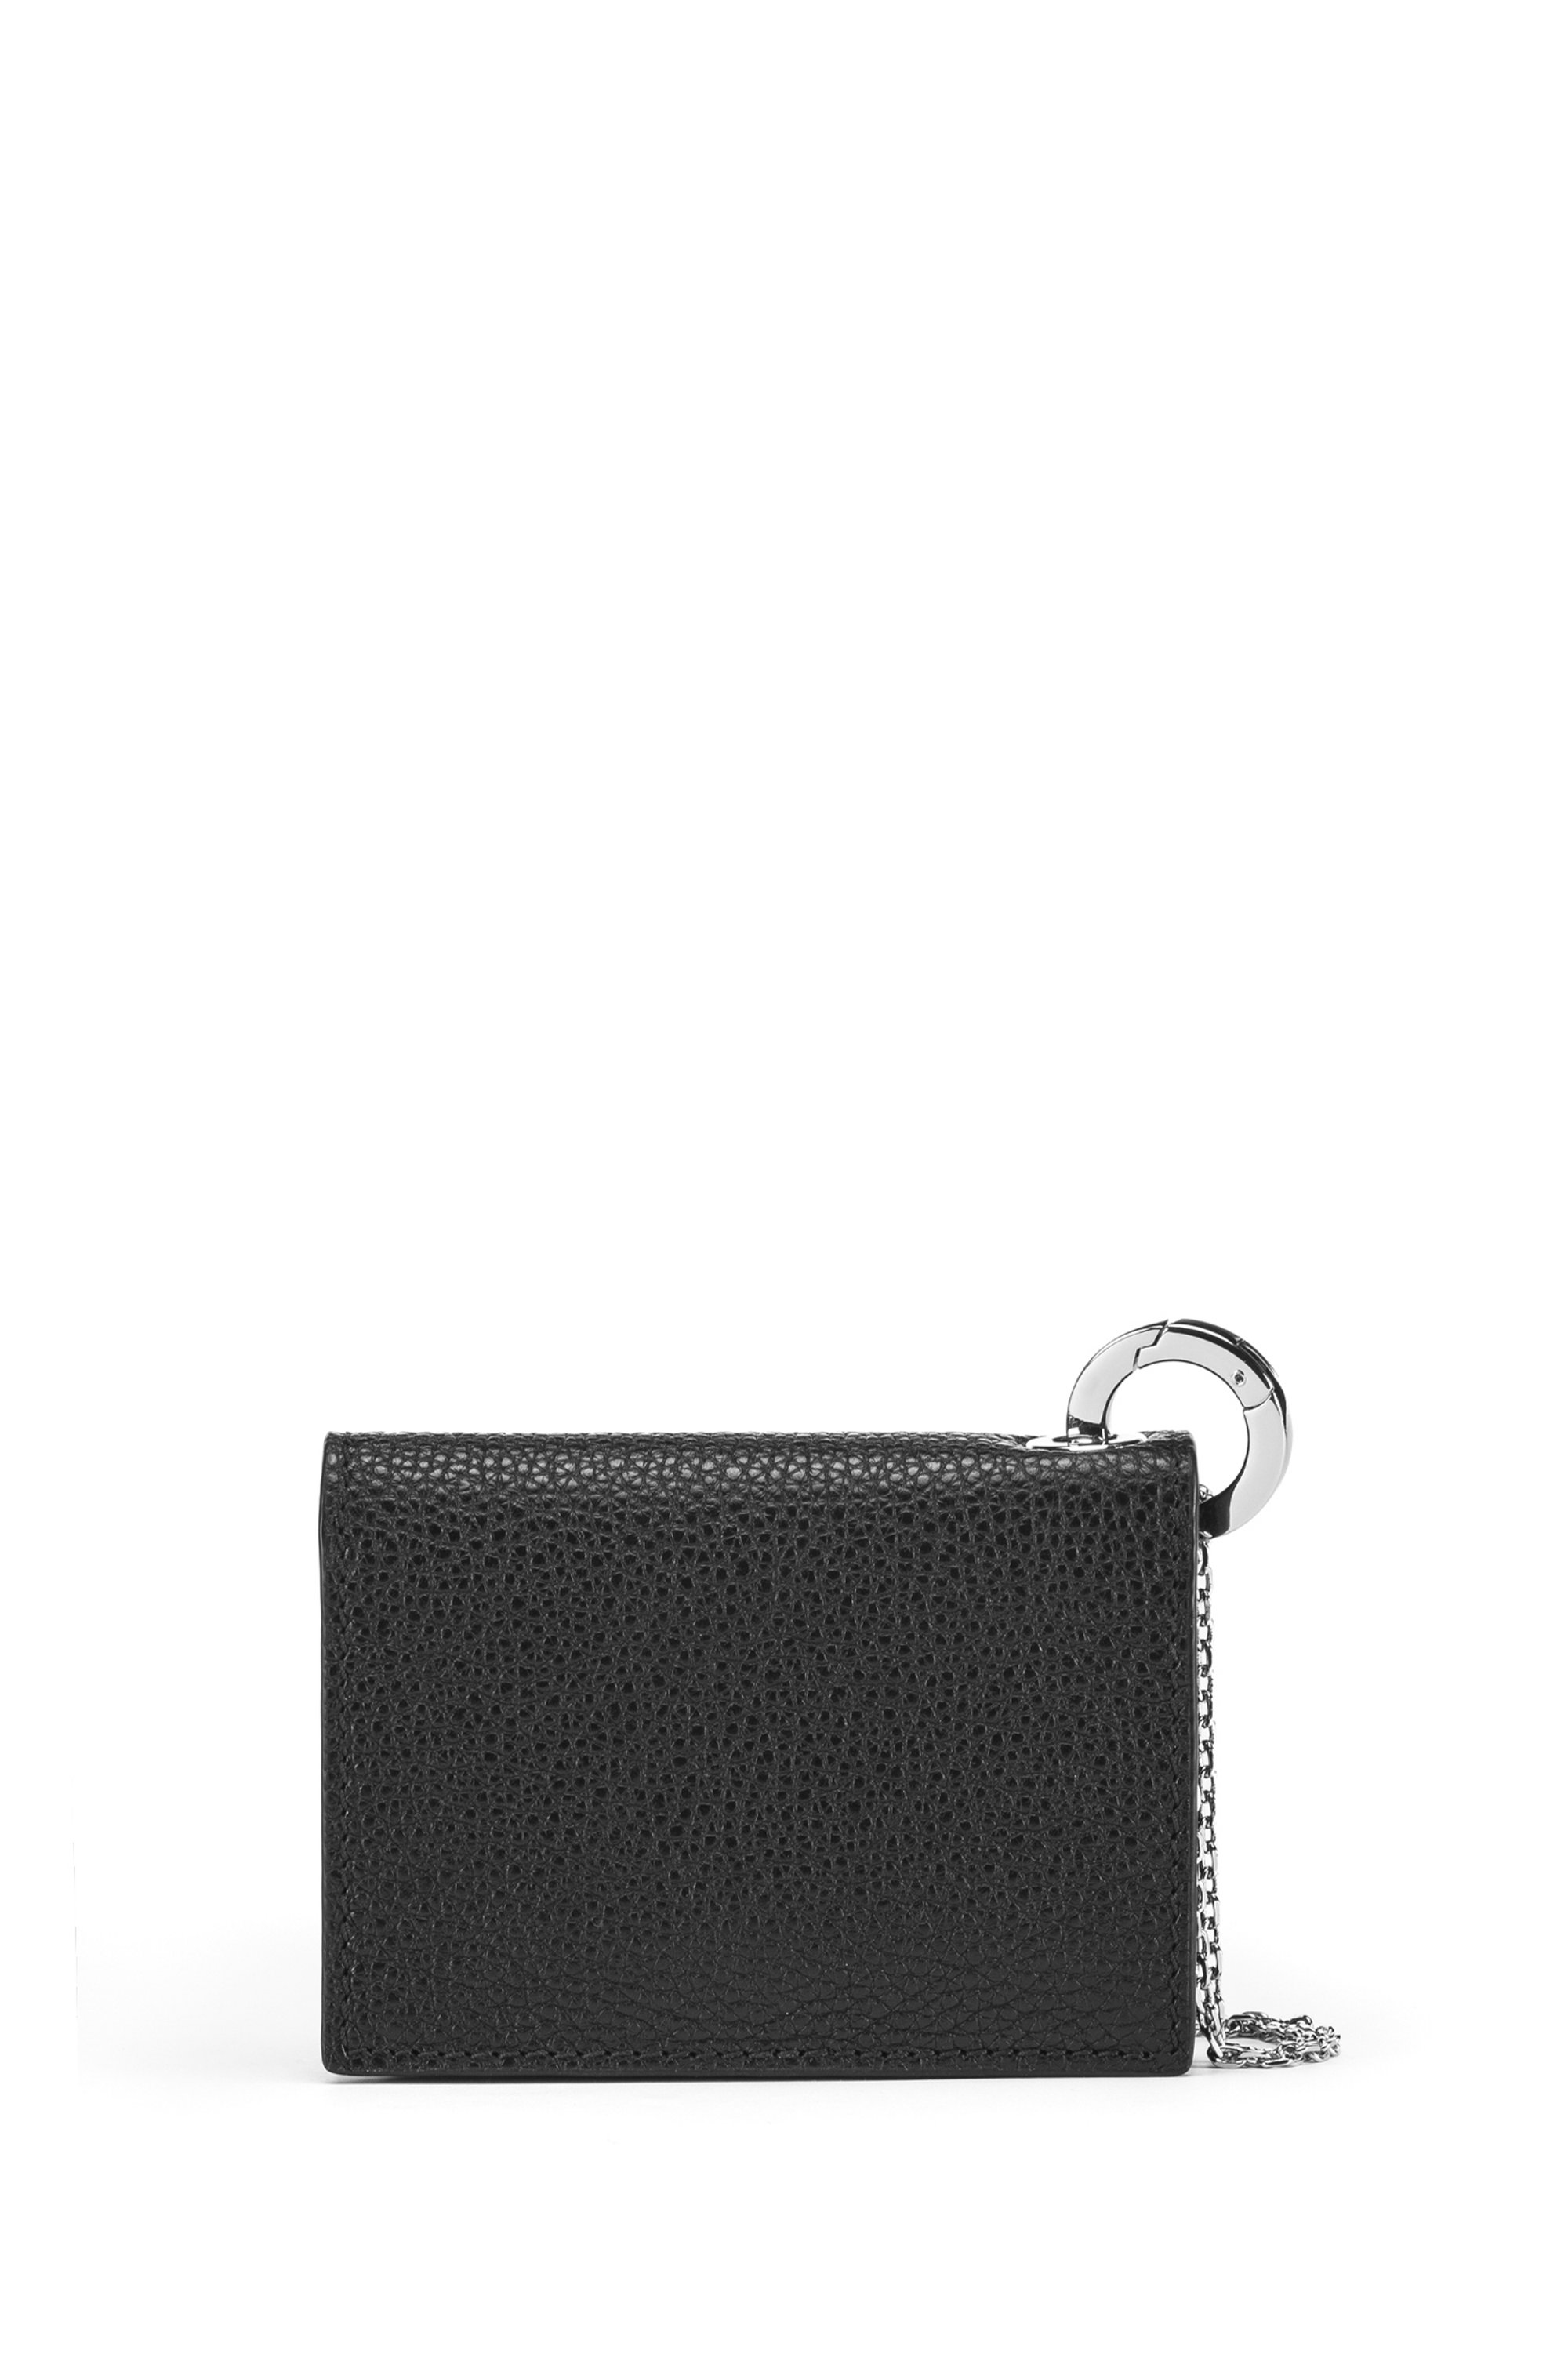 Card holder in leather with detachable chain strap